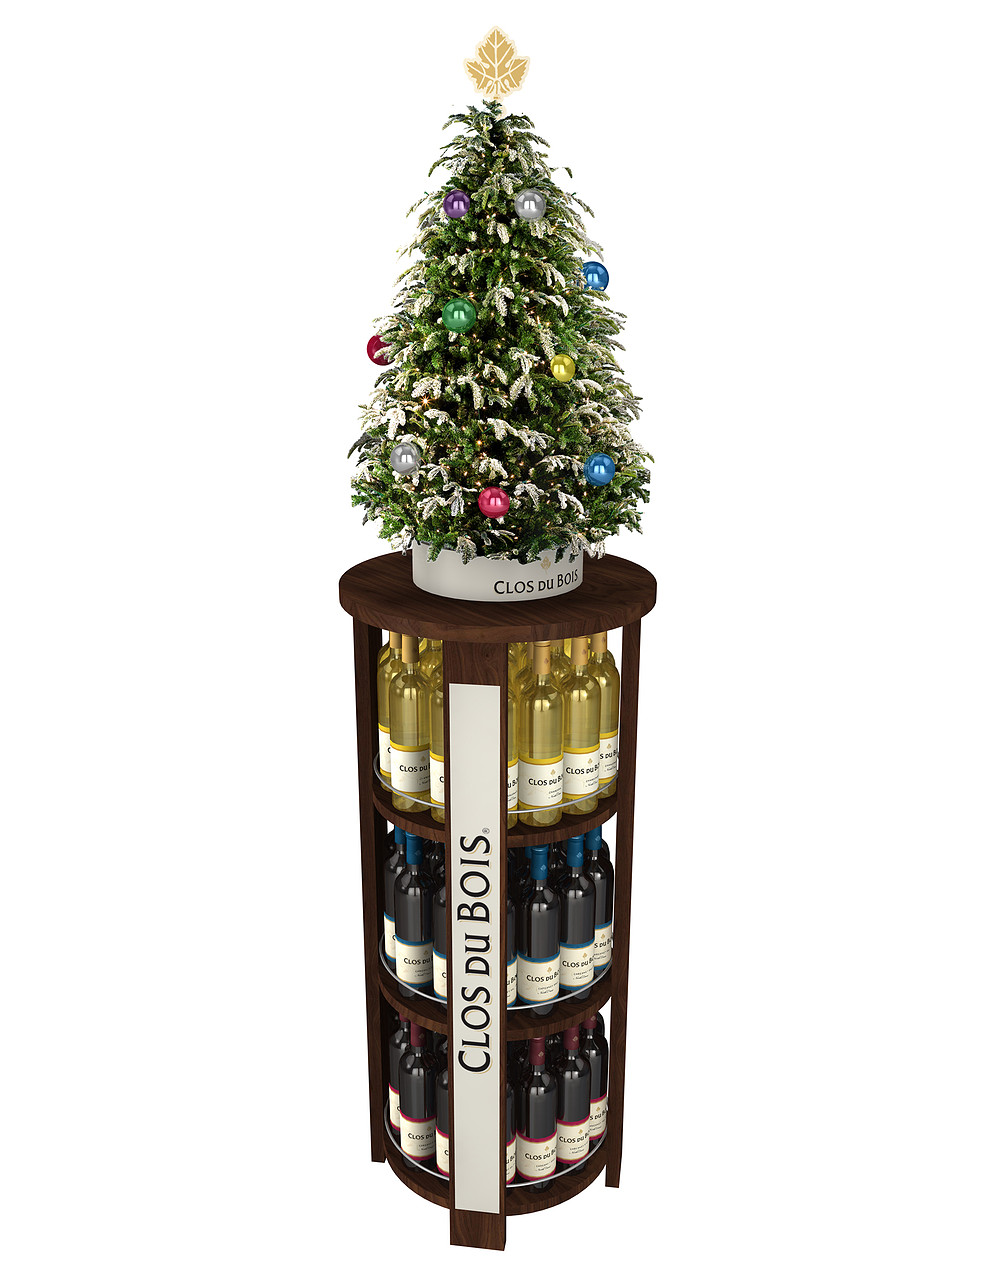 Clos Du Bois Display B Holiday.jpg